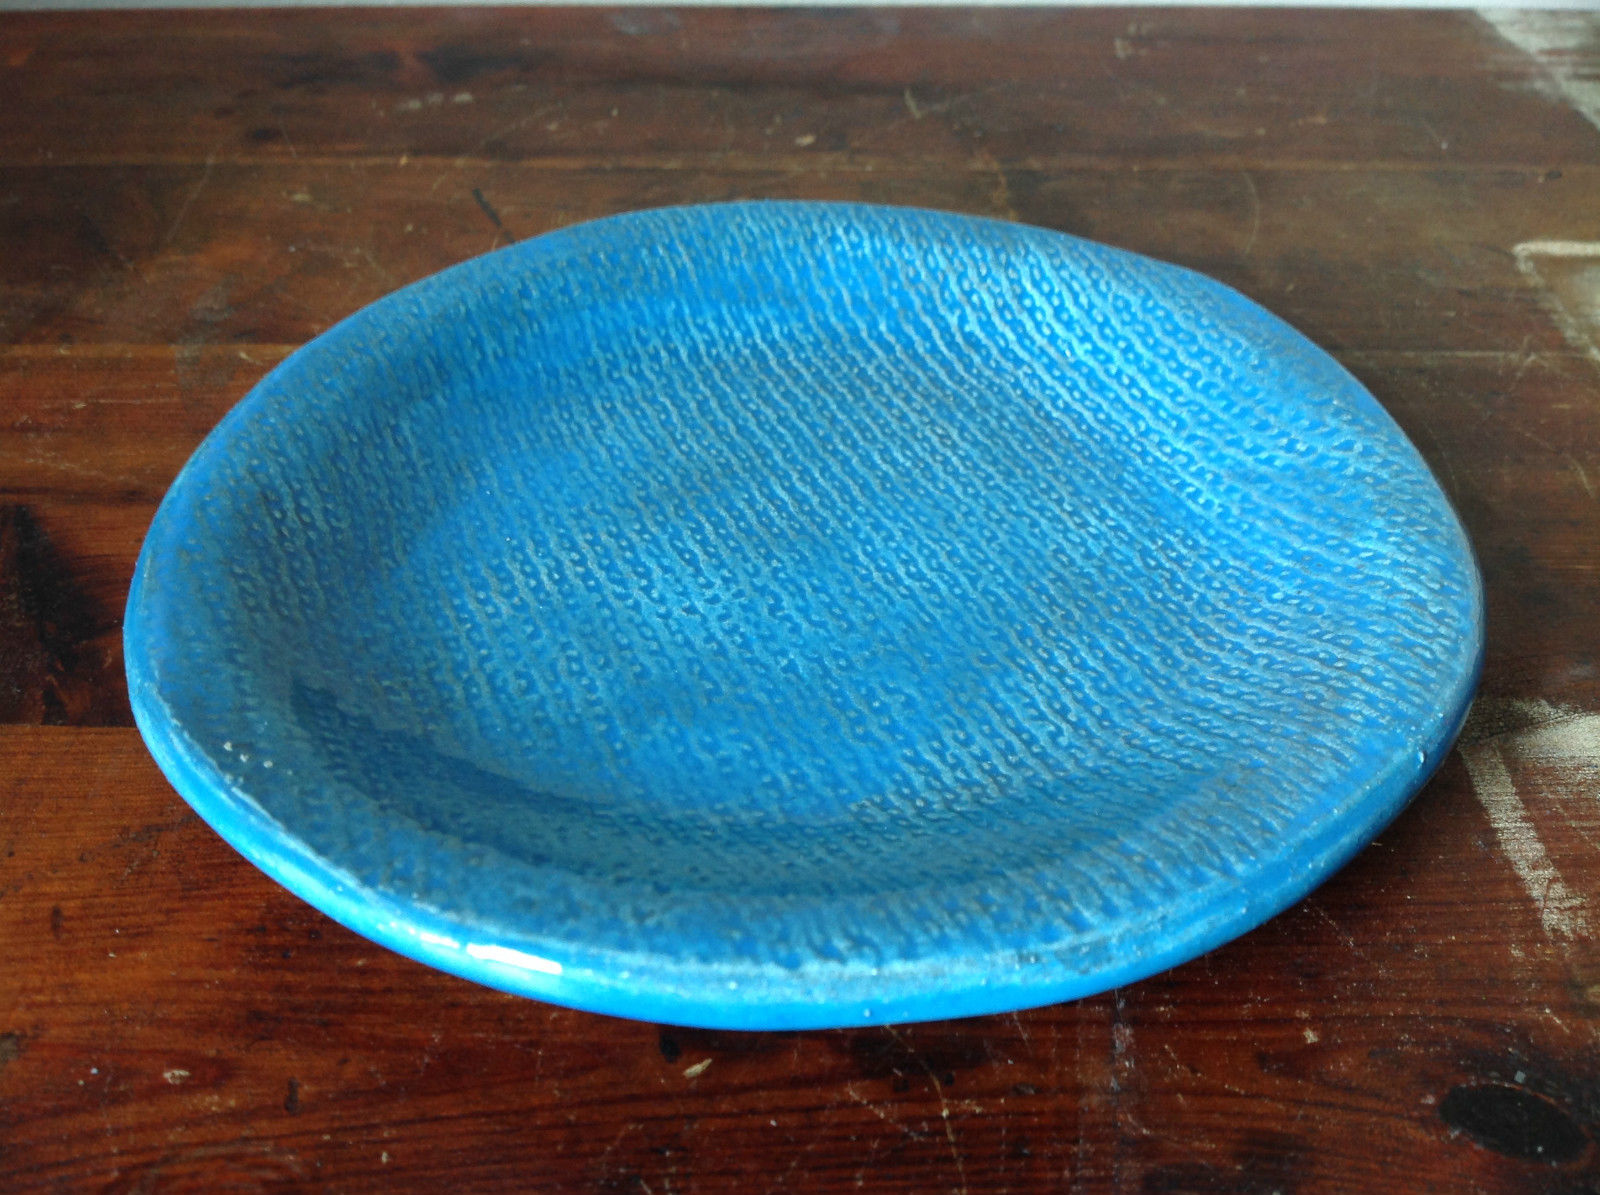 Light Blue Ceramic Artisan Handcrafted Plate Saucer